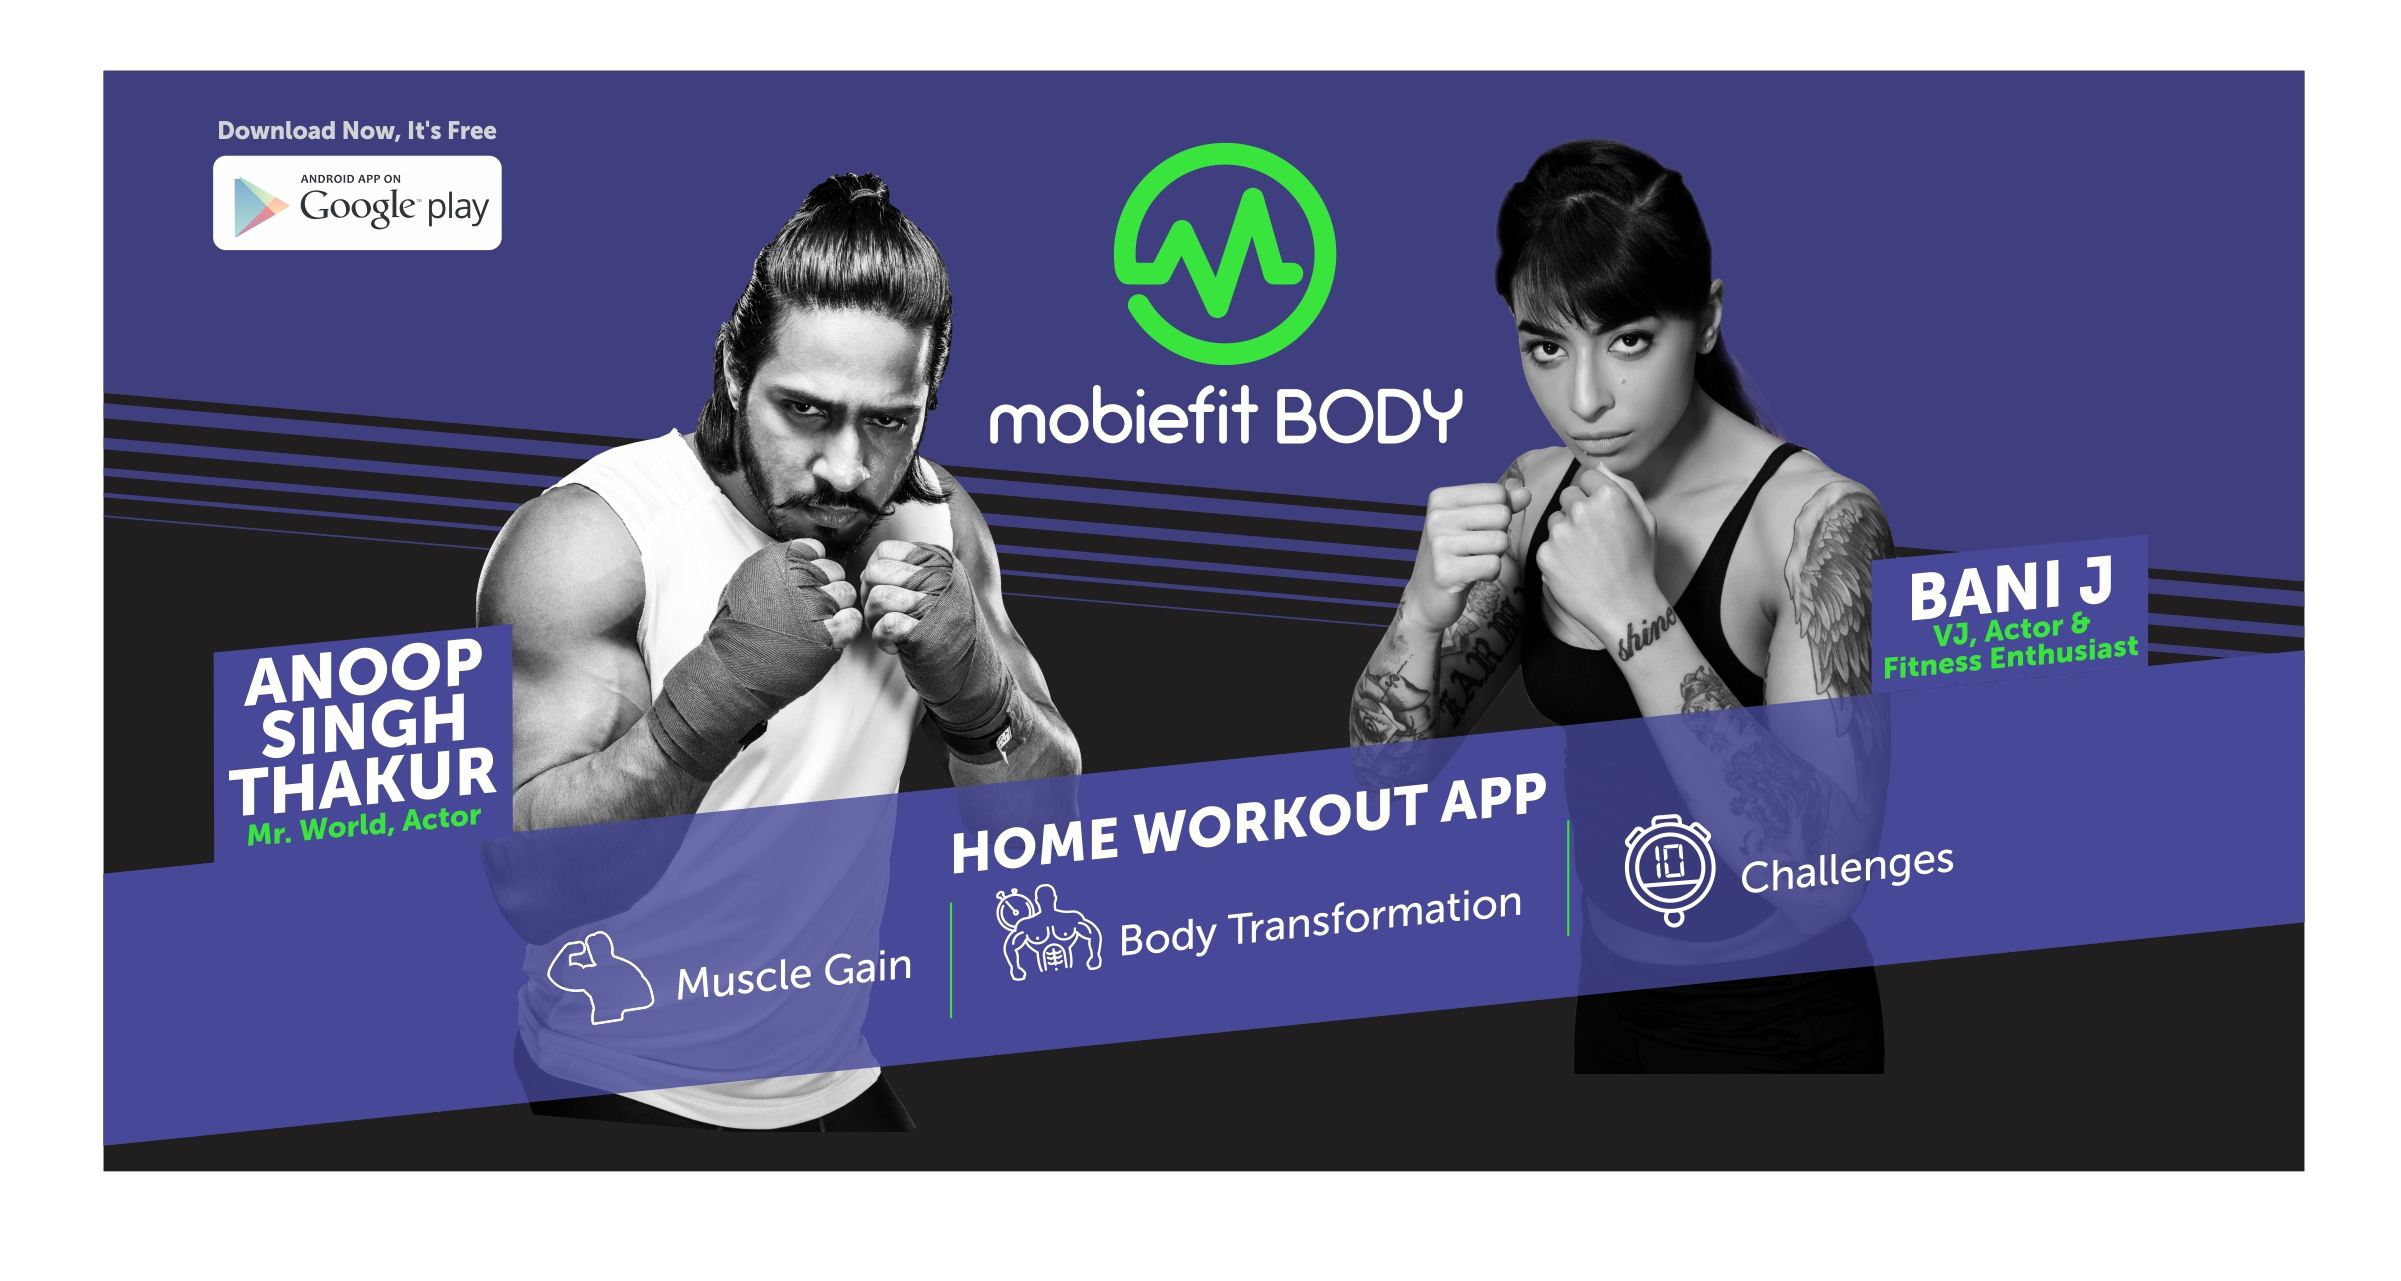 First 500 Users Get a Free One Month Subscription To Mobiefit -